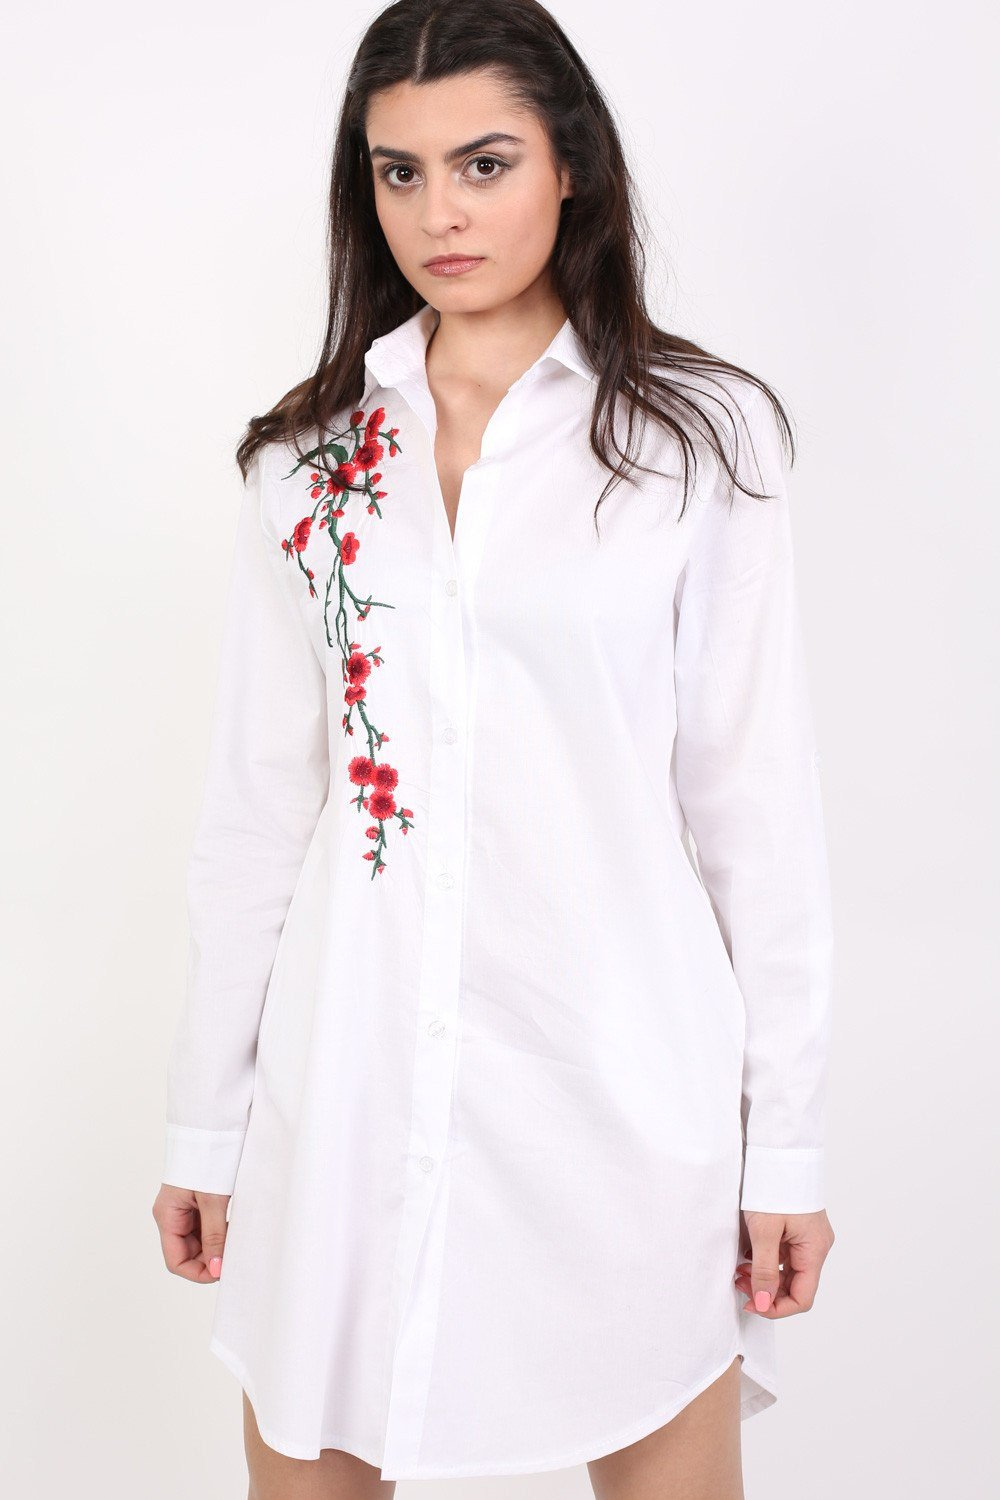 Floral Embroidered Shirt Dress in White 0